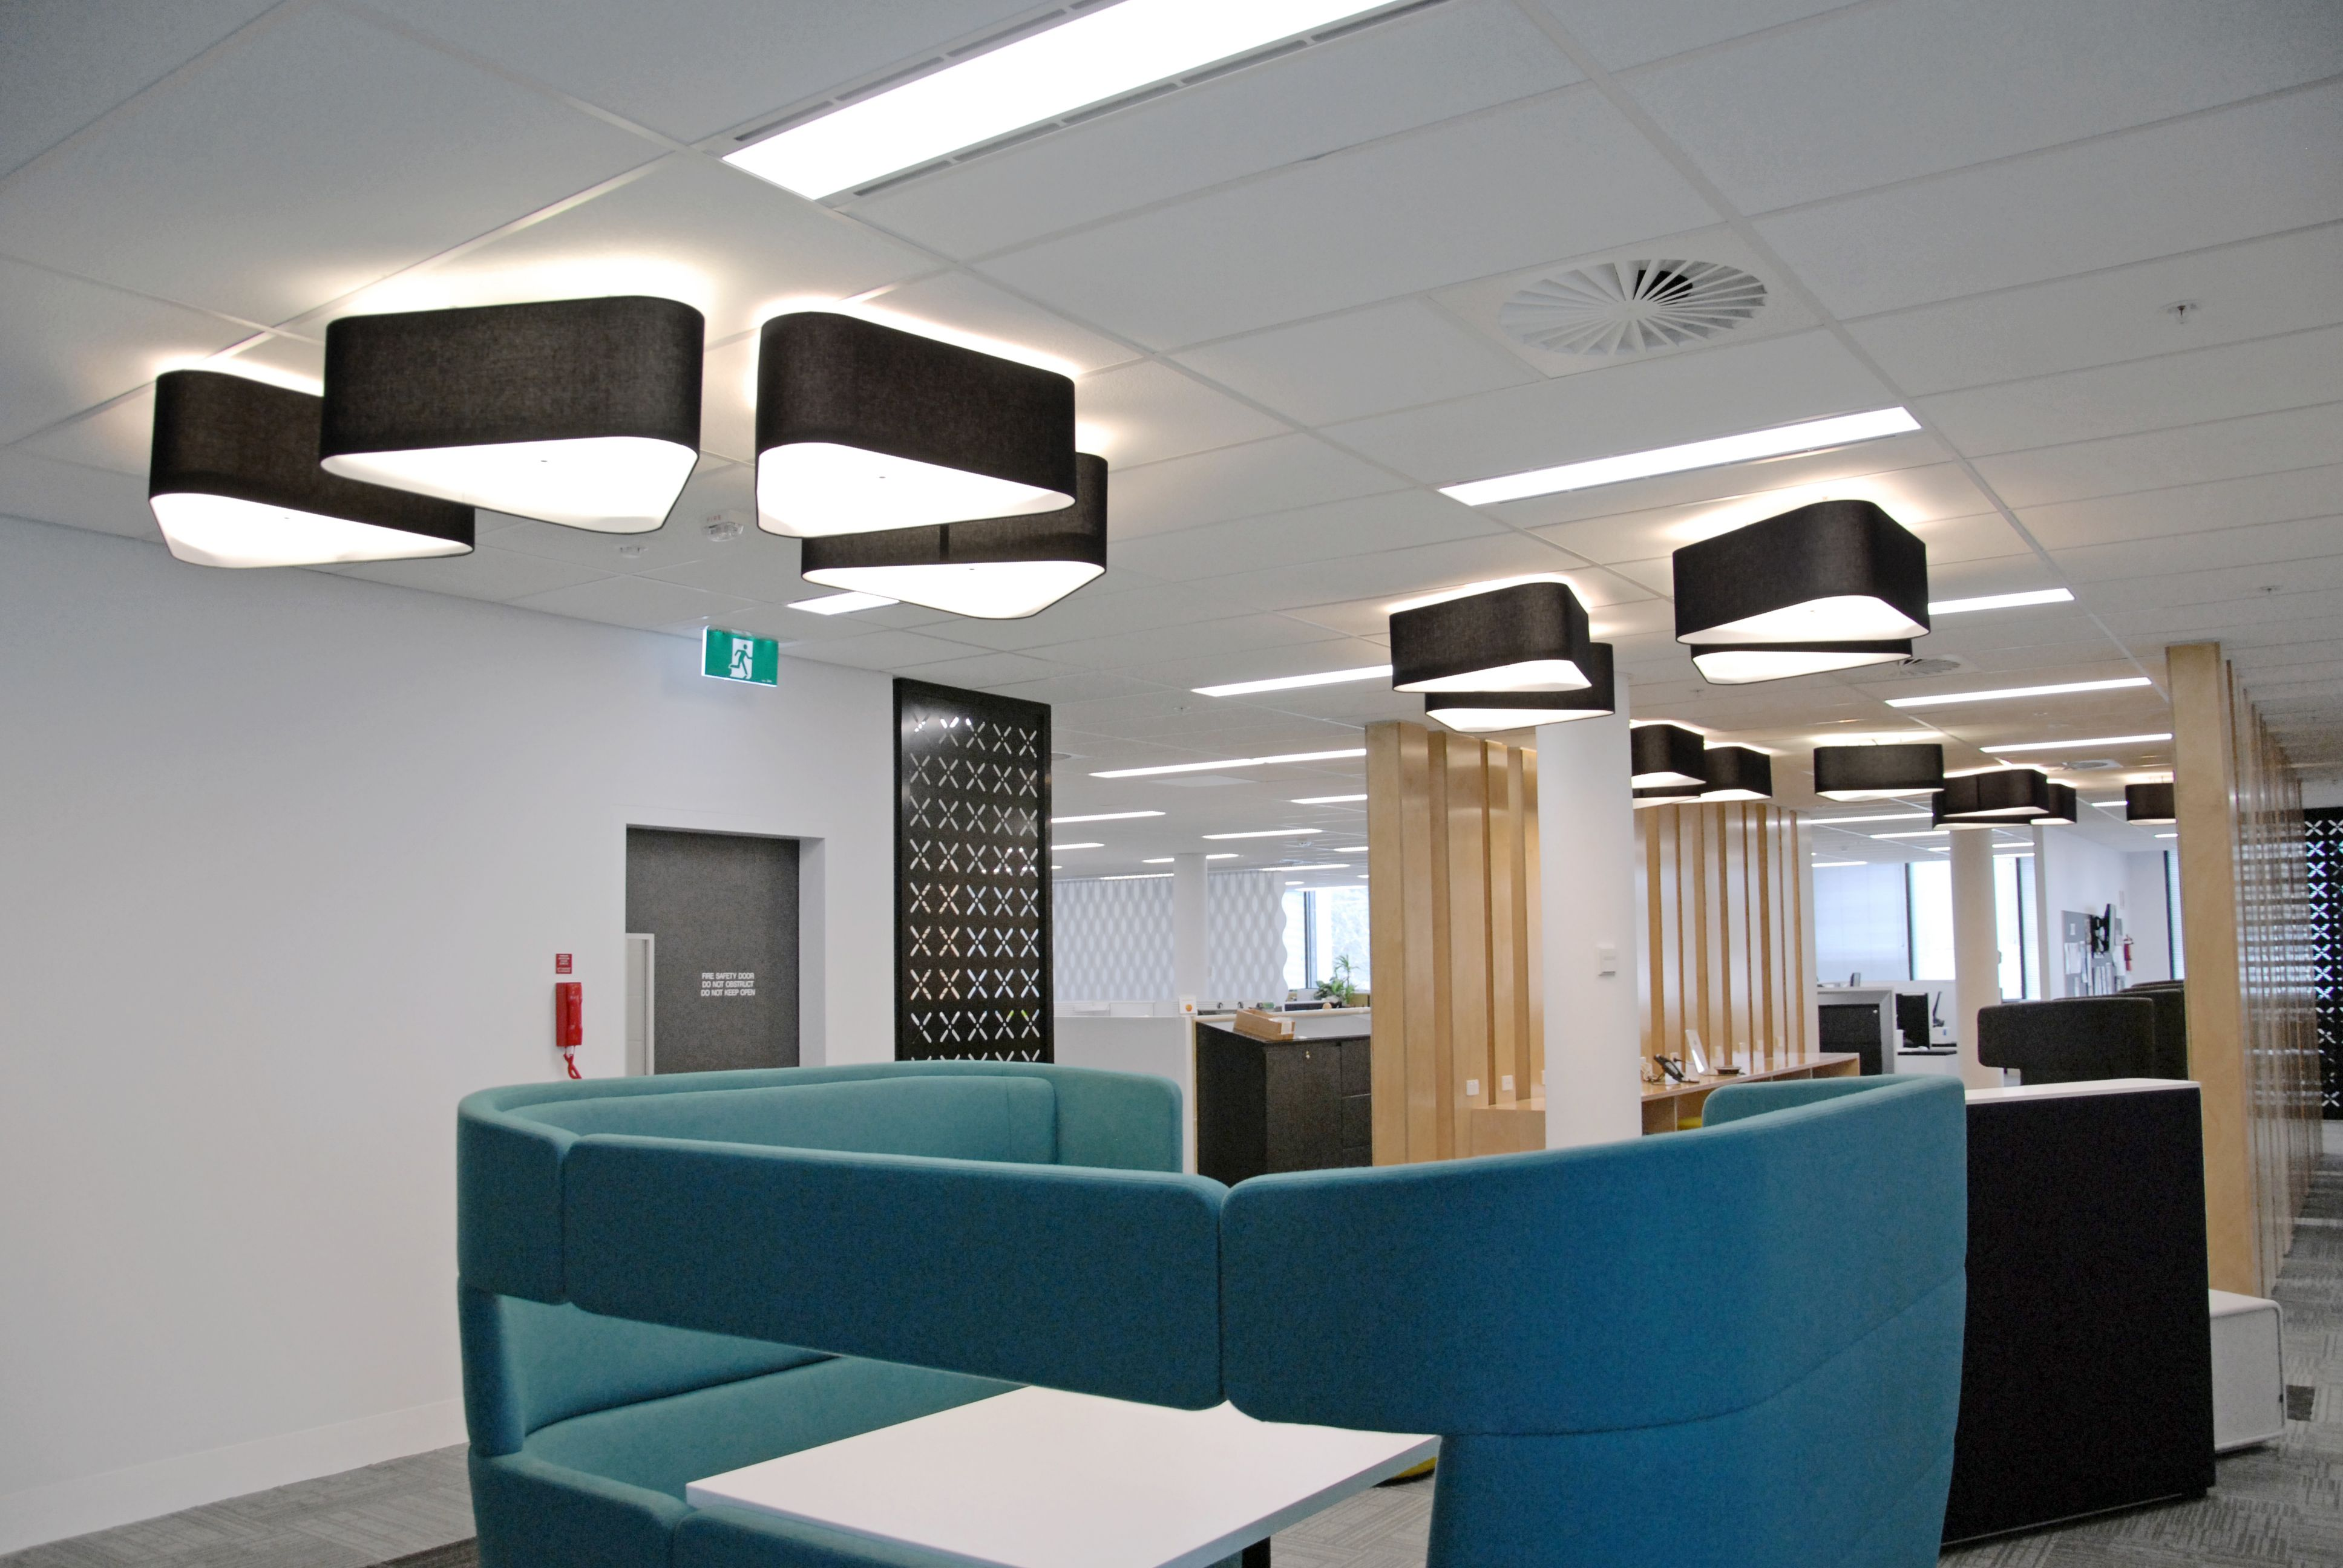 Department Of Human Services Office Canberra Fractal Pendant Lights Lights Pendantlights Pendantlight Int Workspace Design Office Design Interior Design